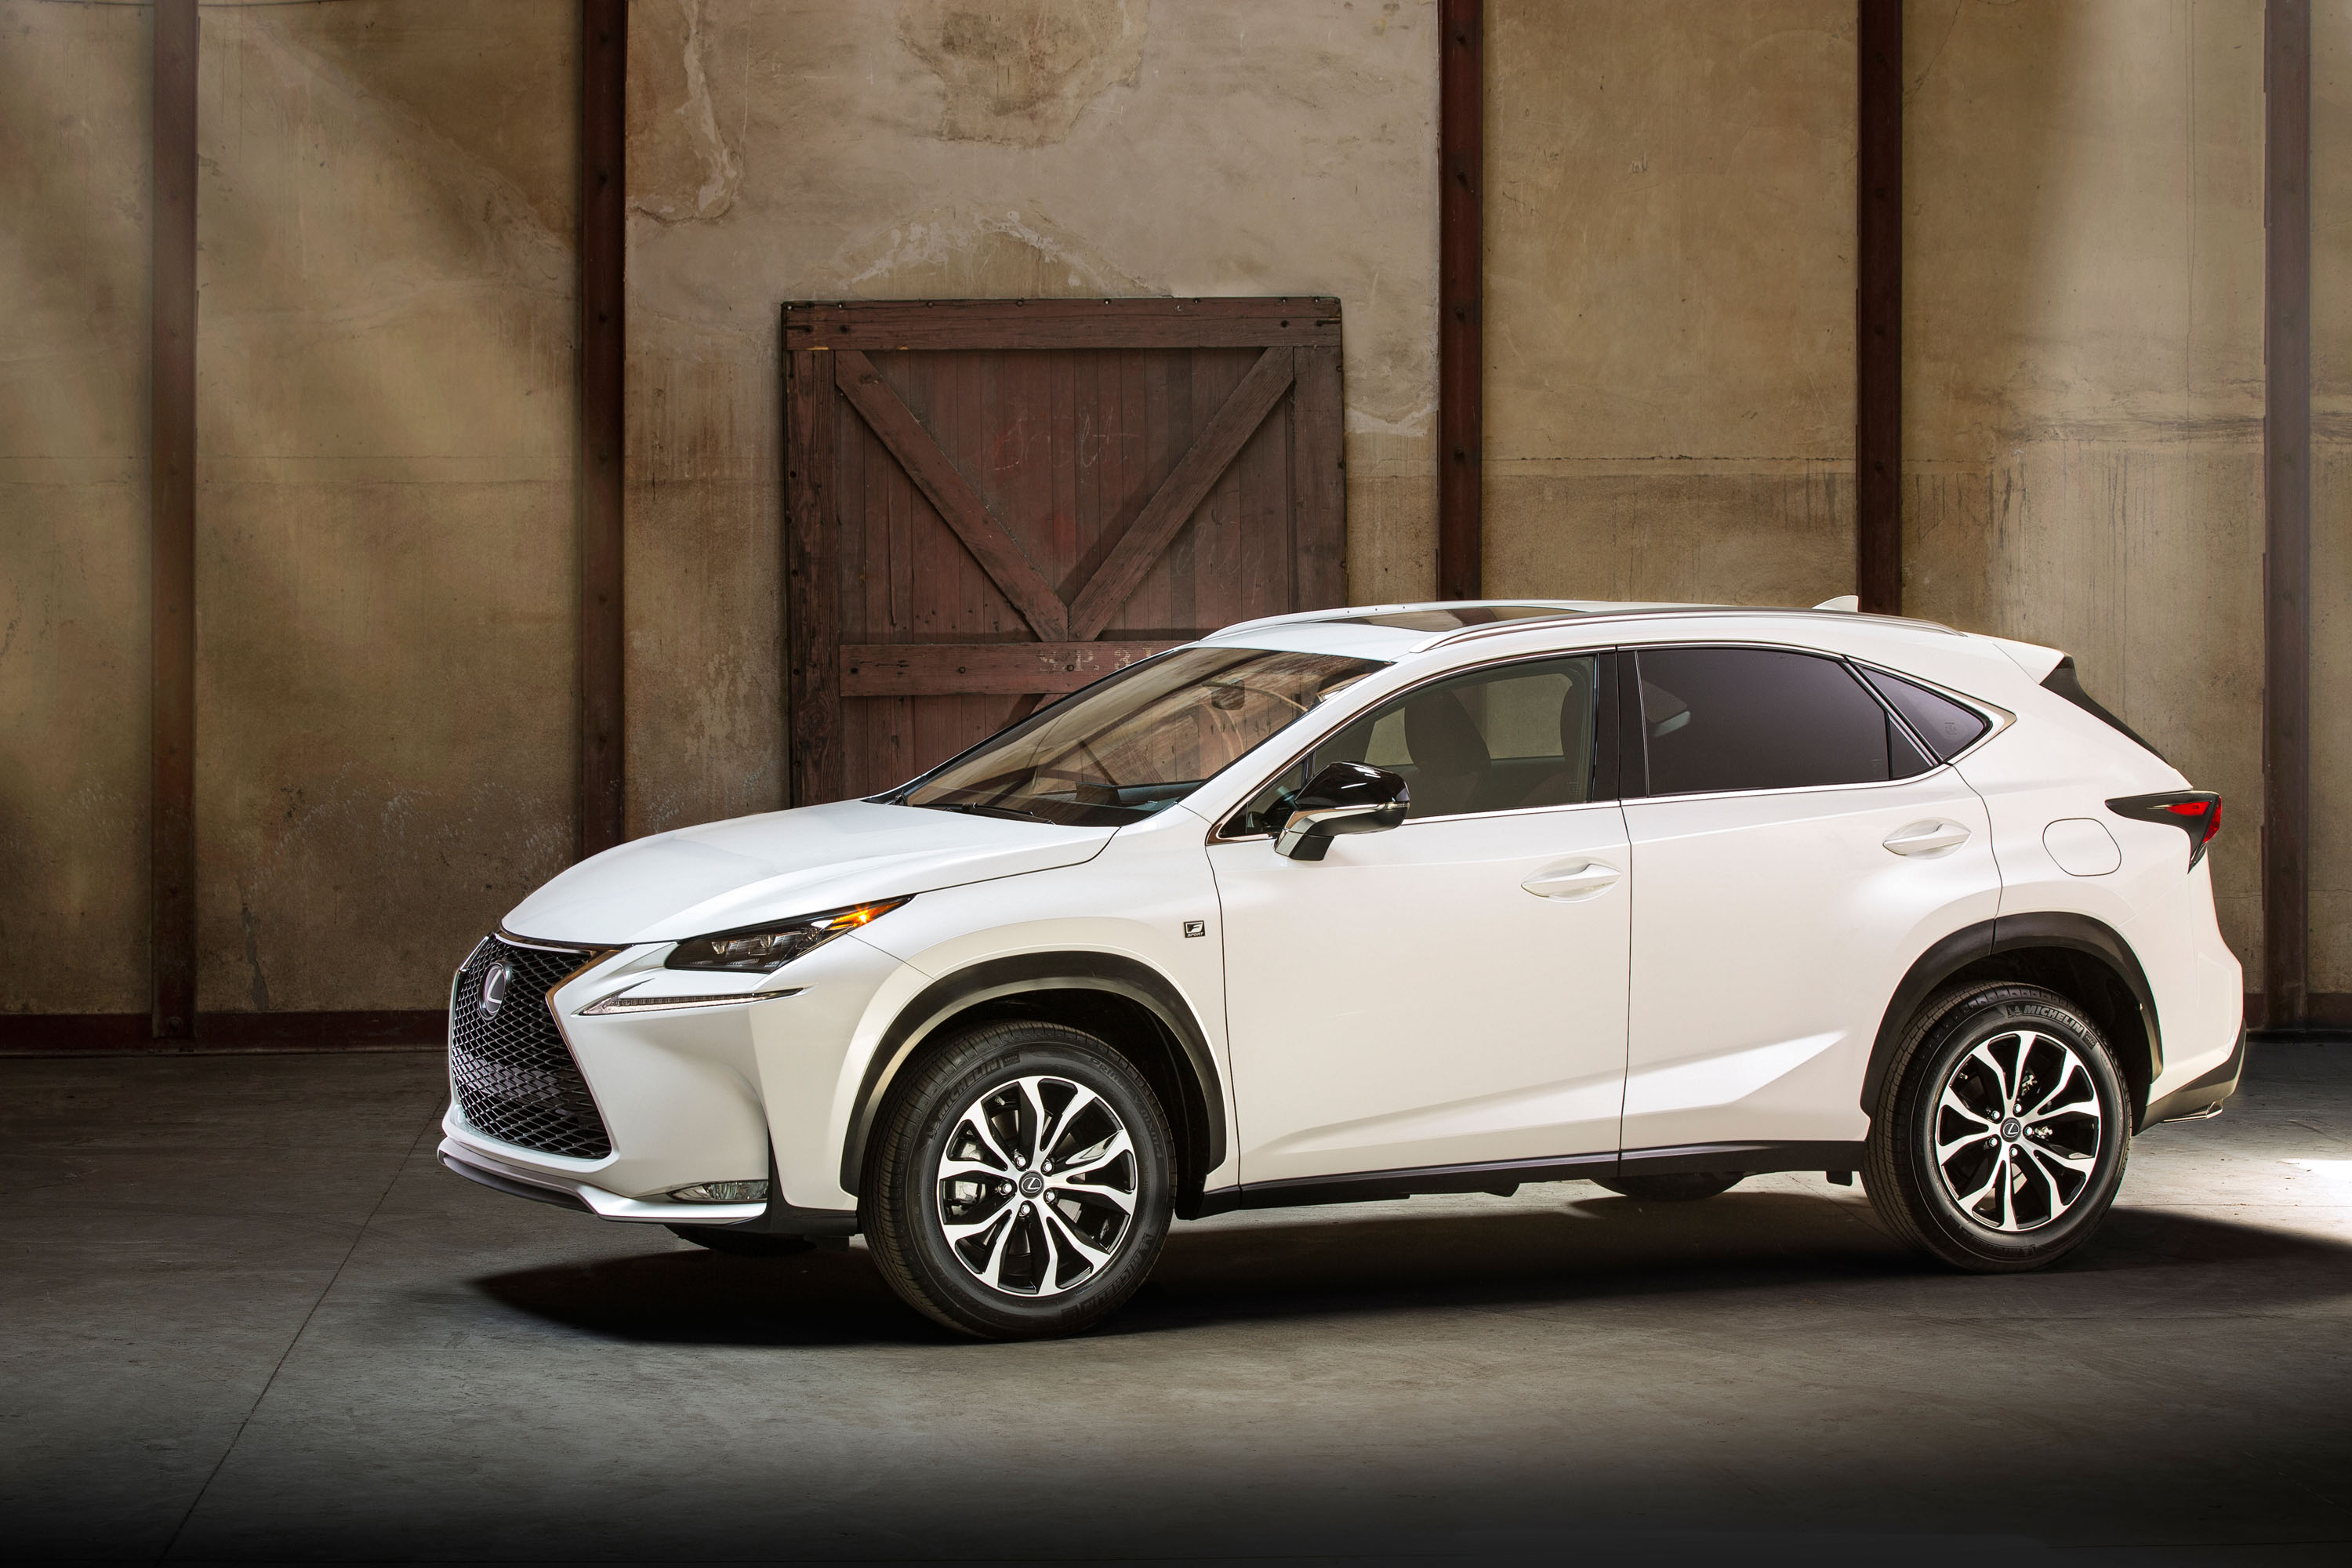 2015 Lexus NX 200t F SPORT 001 All New Lexus NX Launches with Brand's First Turbo Powertrain